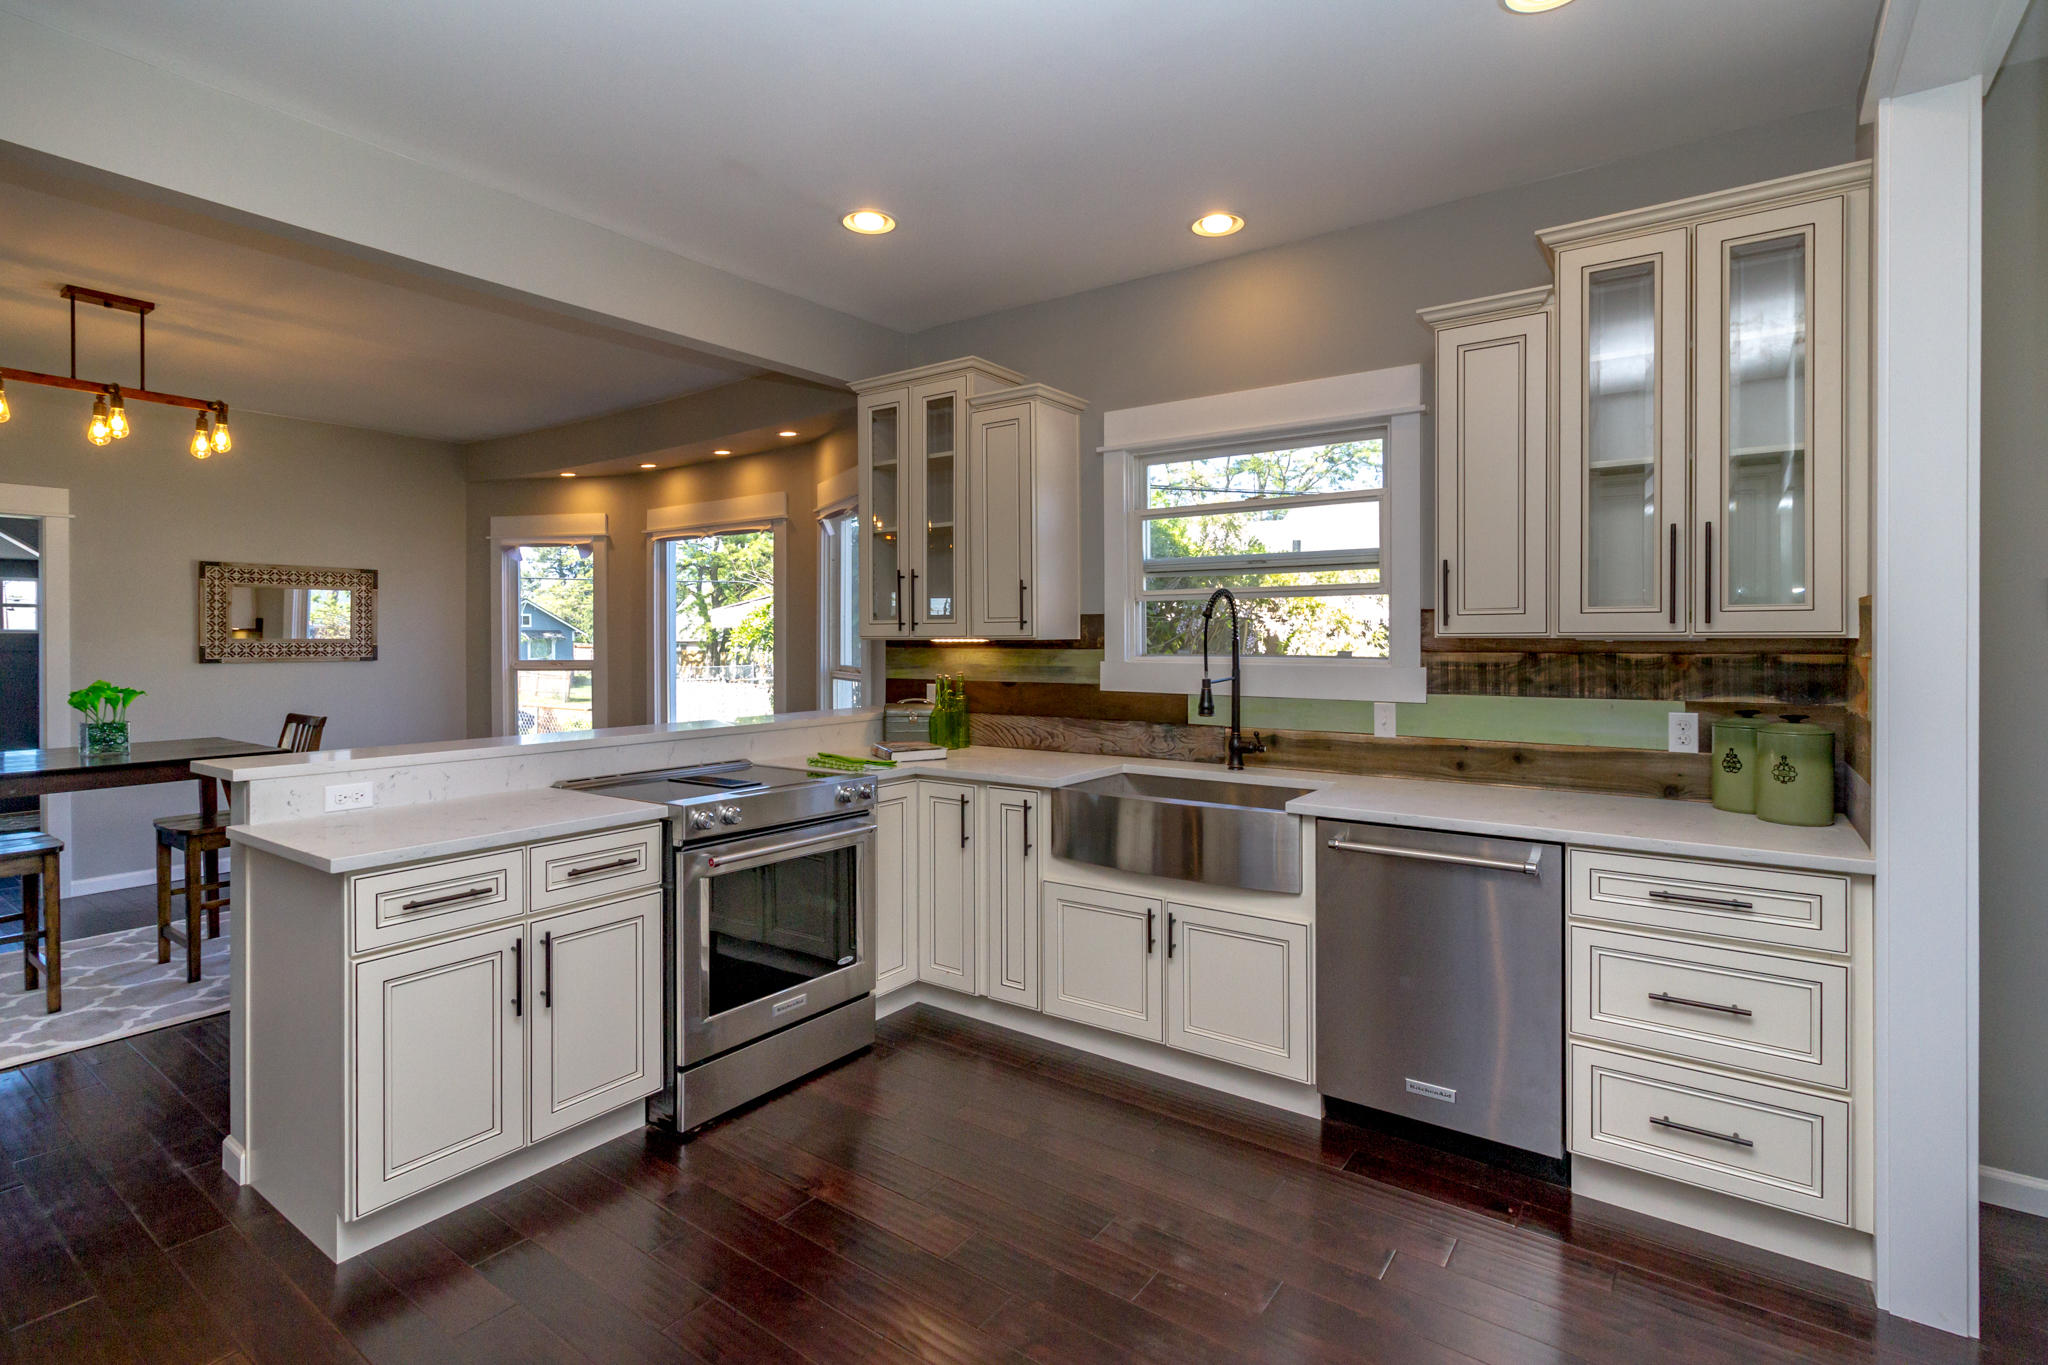 Gray Tn Lily Ann Cabinets Owner Lily Ann Cabinets Vs Cabinets To Go Information Lily Ann Cabinets Nashville houzz-03 Lily Ann Cabinets